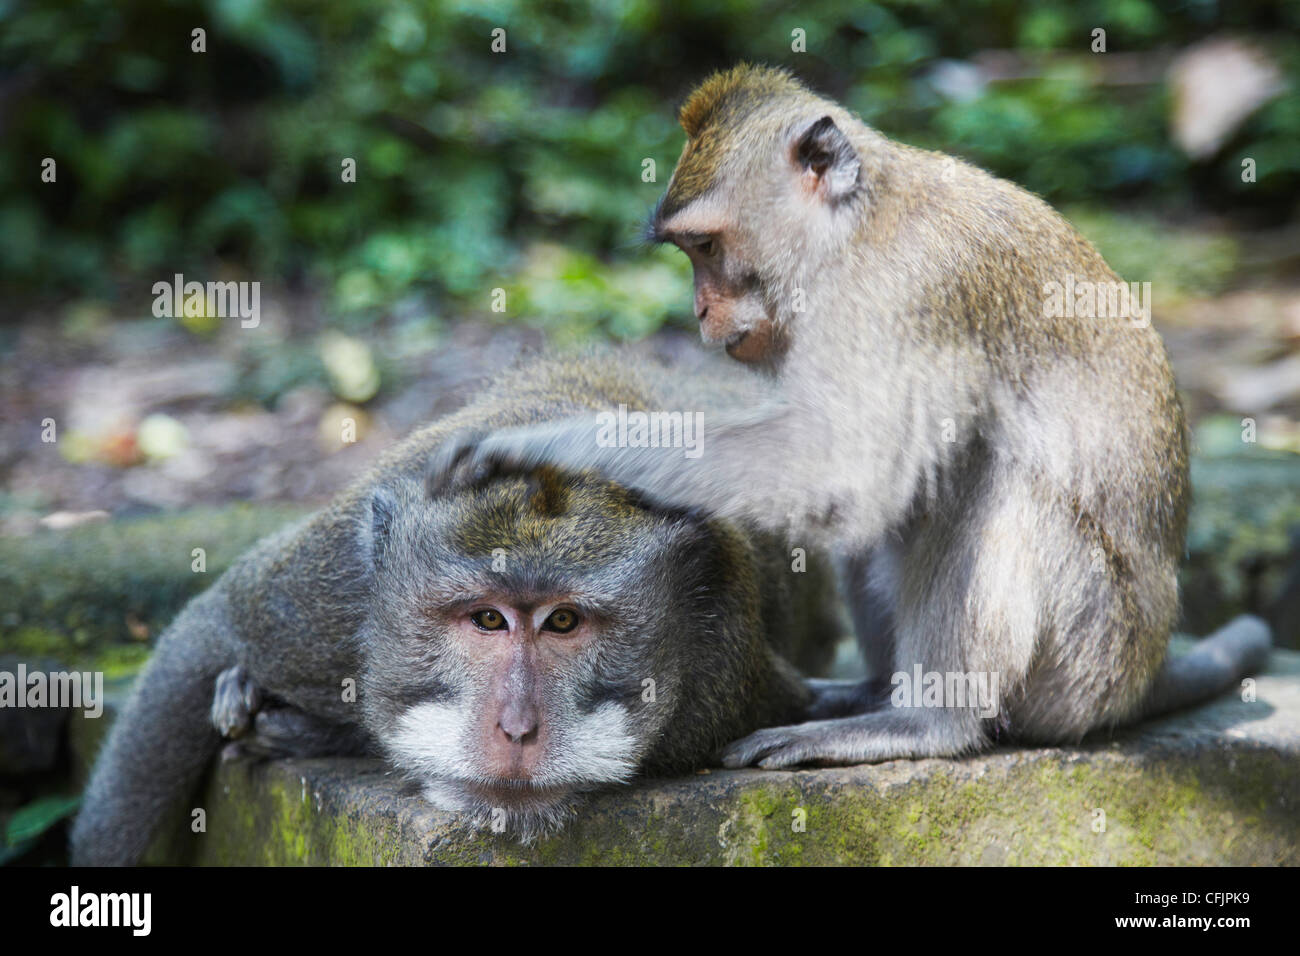 Crab-eating macaque monkeys (Macaca fascicularis) in Monkey Forest, Ubud, Bali, Indonesia, Southeast Asia, Asia - Stock Image